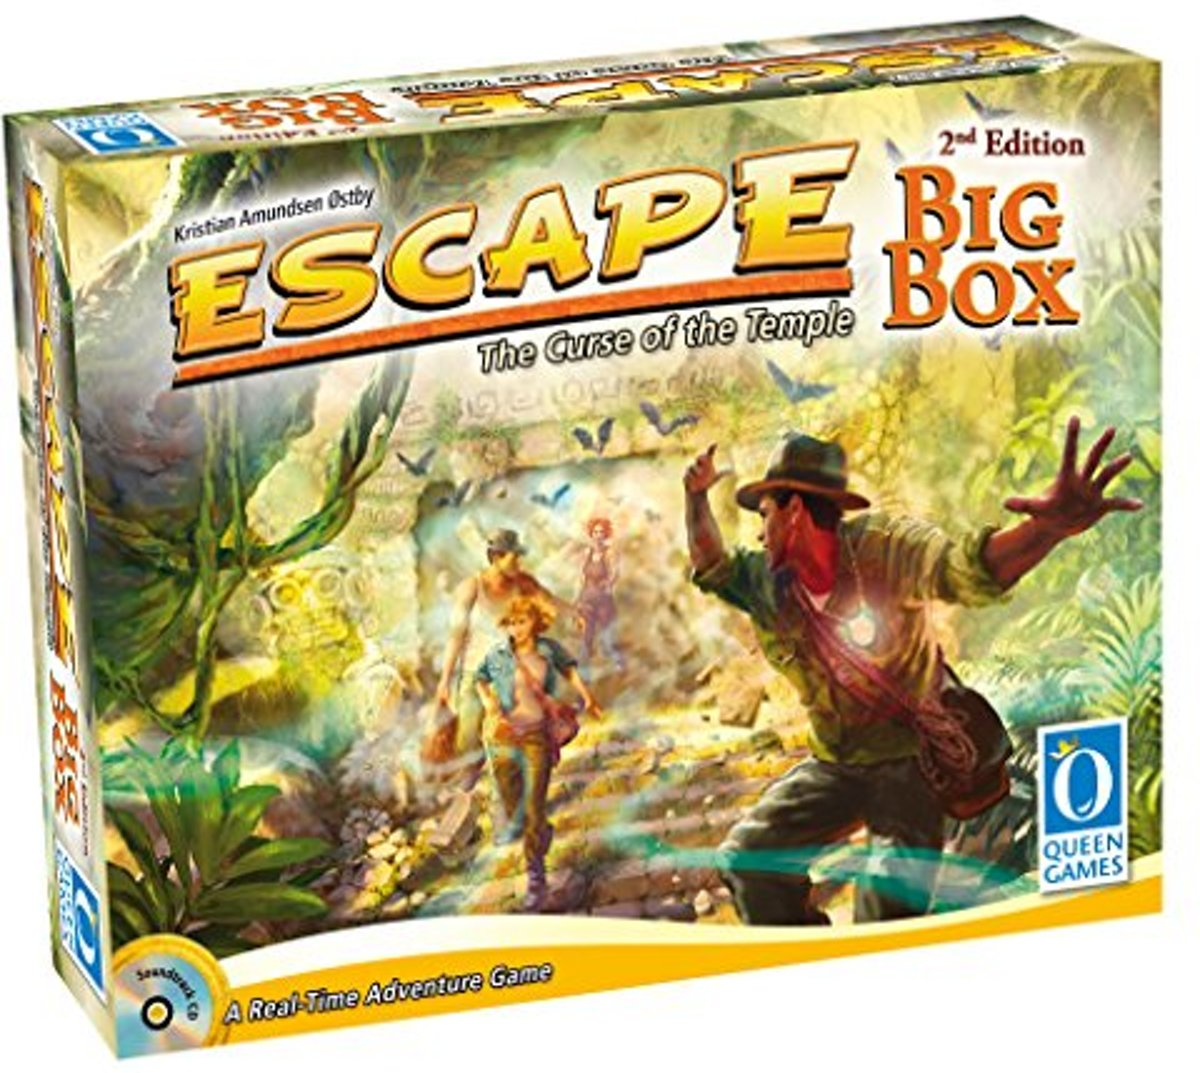 Escape: The Curse of the Temple Big Box 2